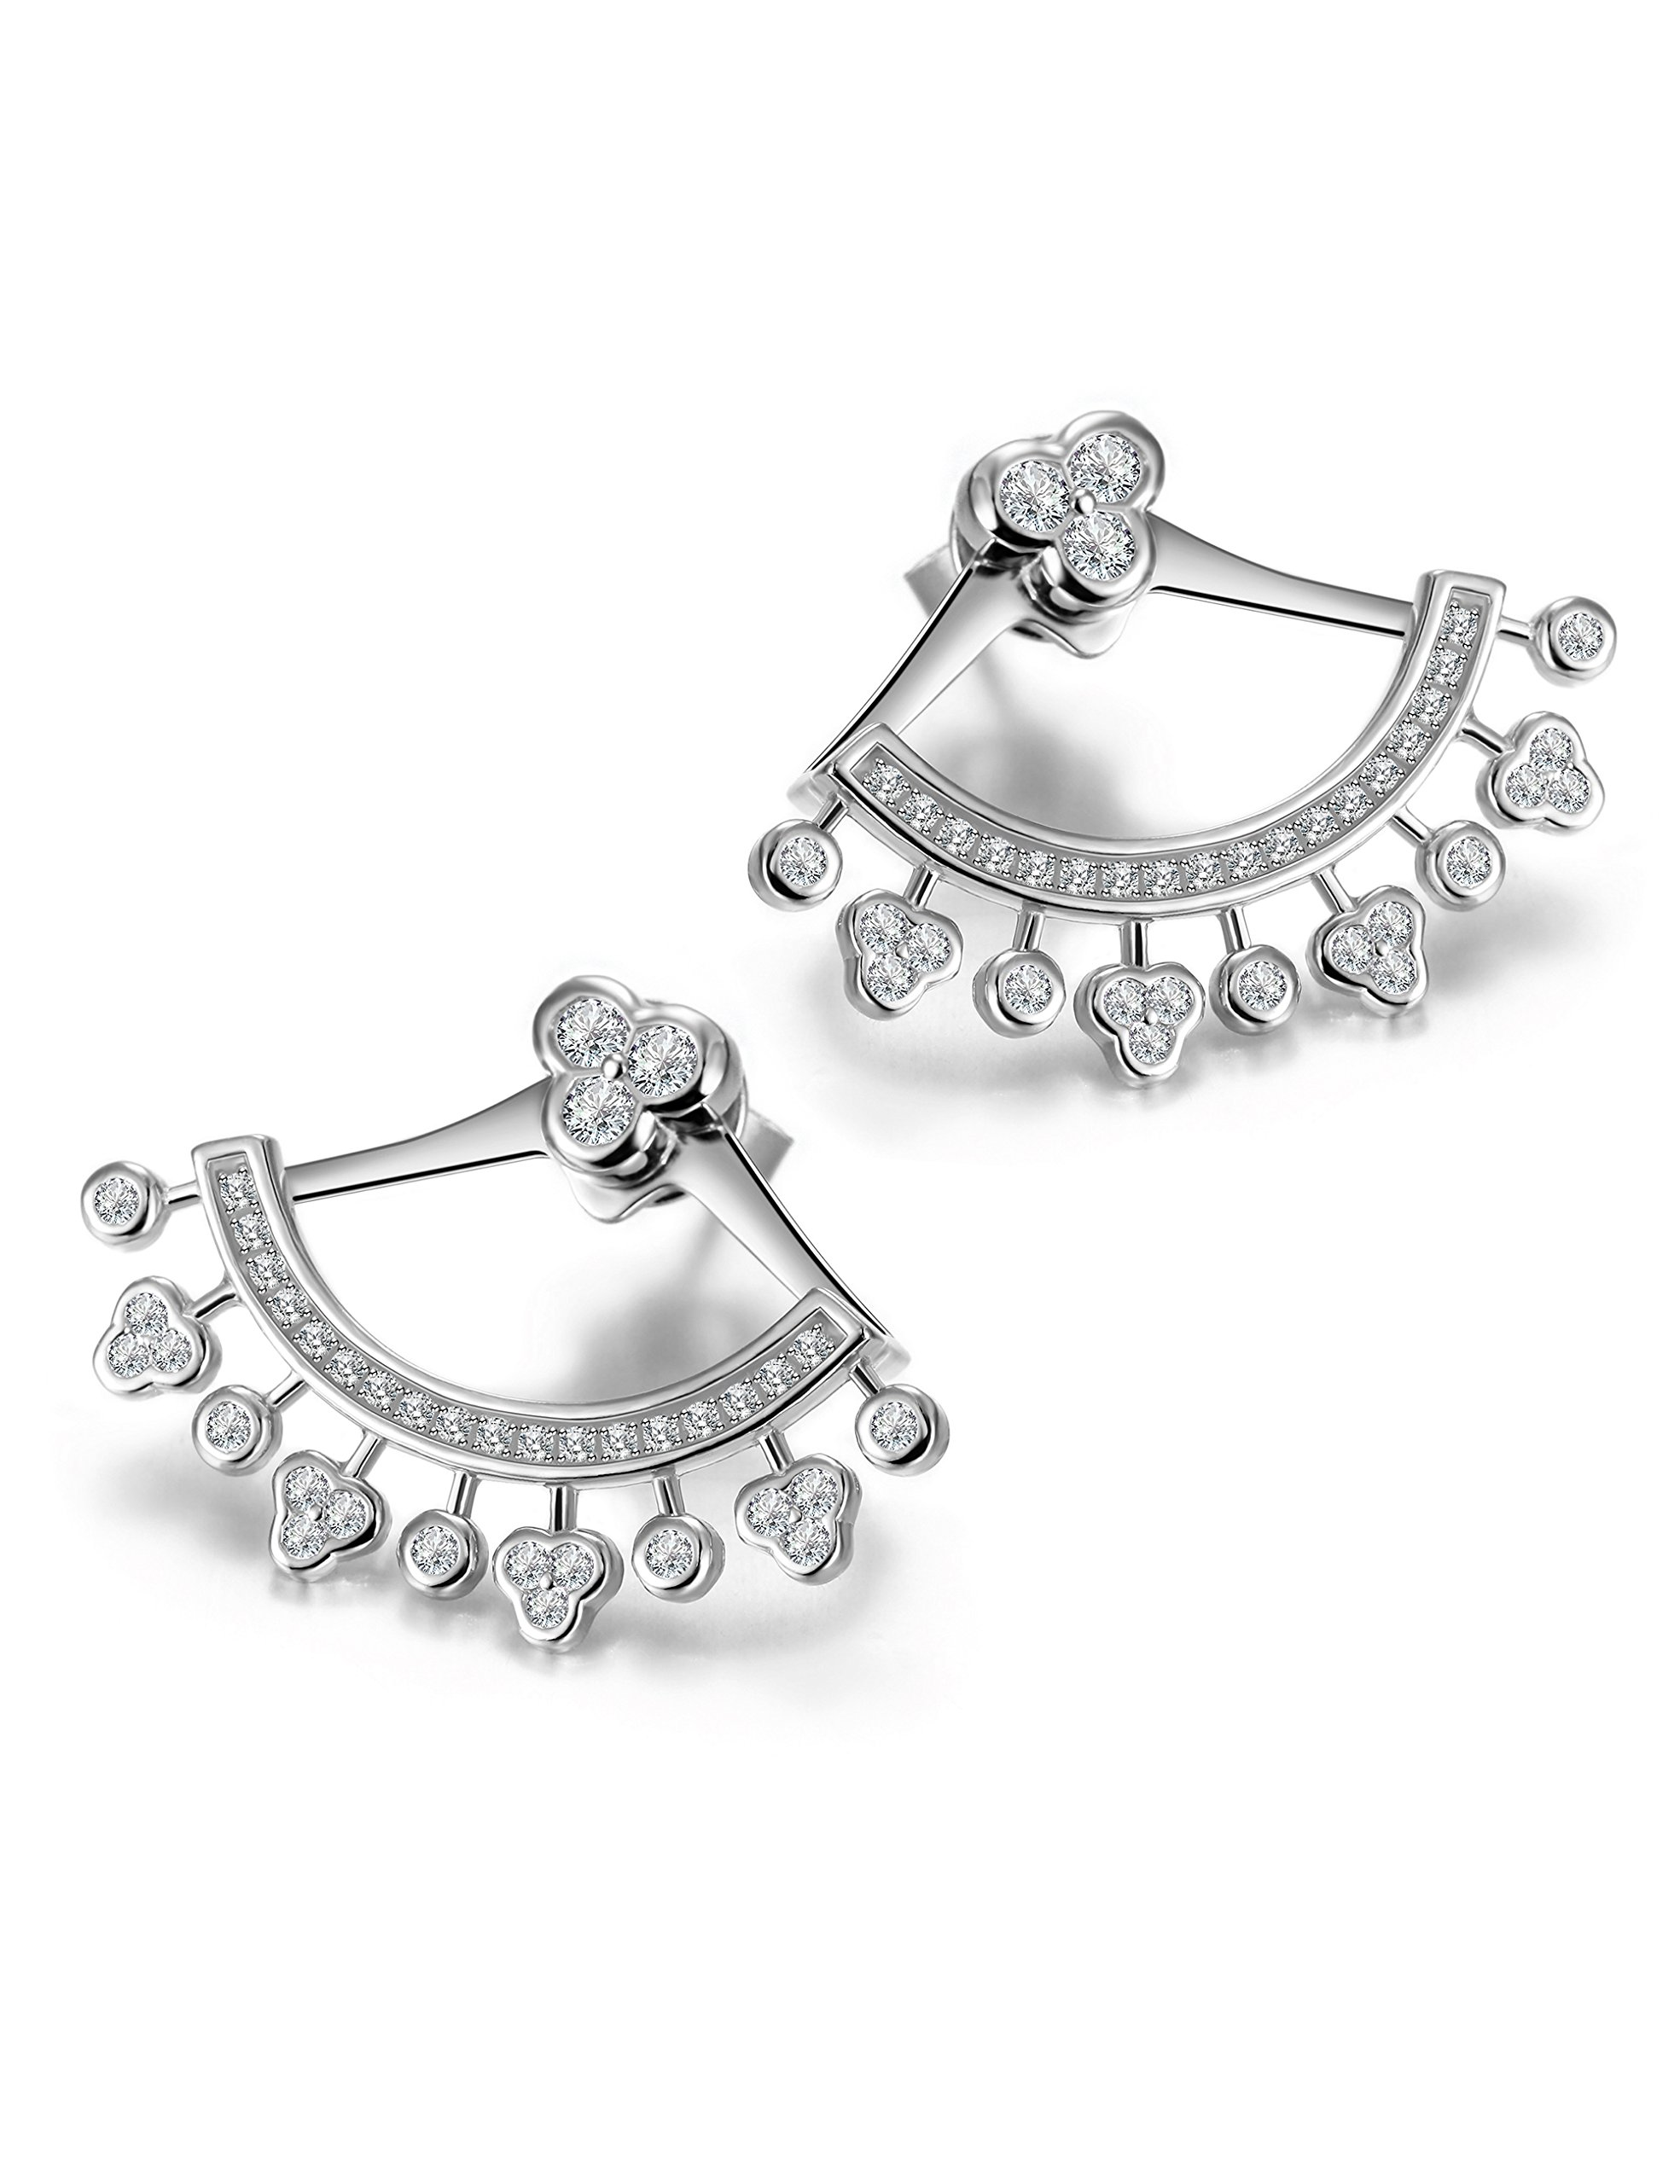 Wistic Sterling Silver Earrings with Jackets and Cubic Zircons Ear Stud Cuff for Women Girls(White) by Wistic